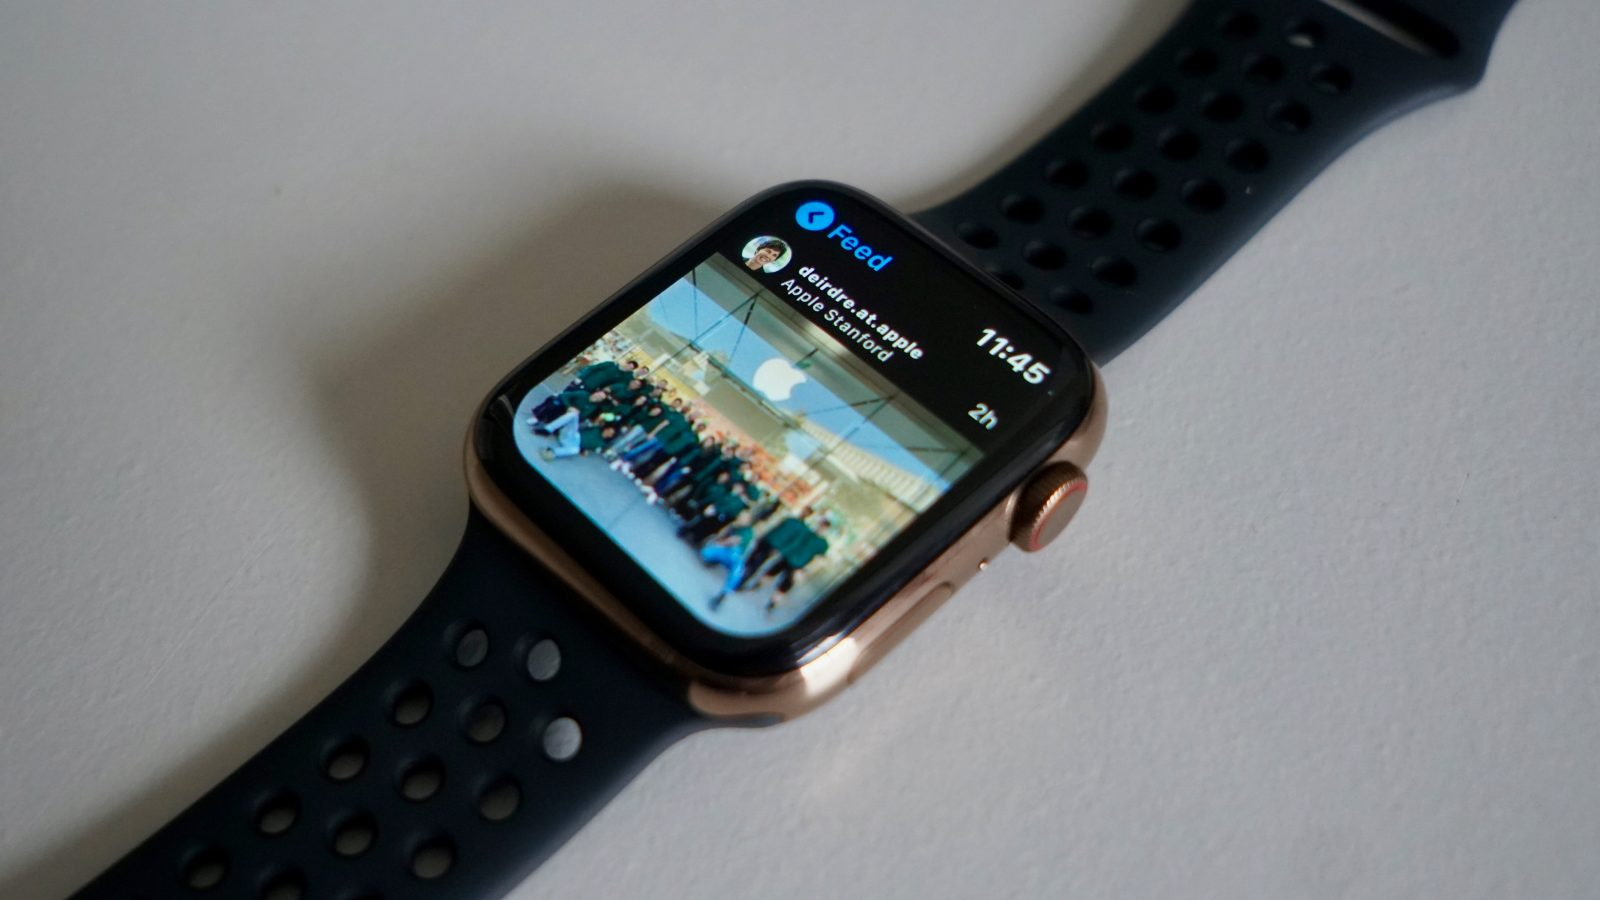 QnA VBage Lens is a modern and featured-packed Instagram app for Apple Watch that works without the iPhone